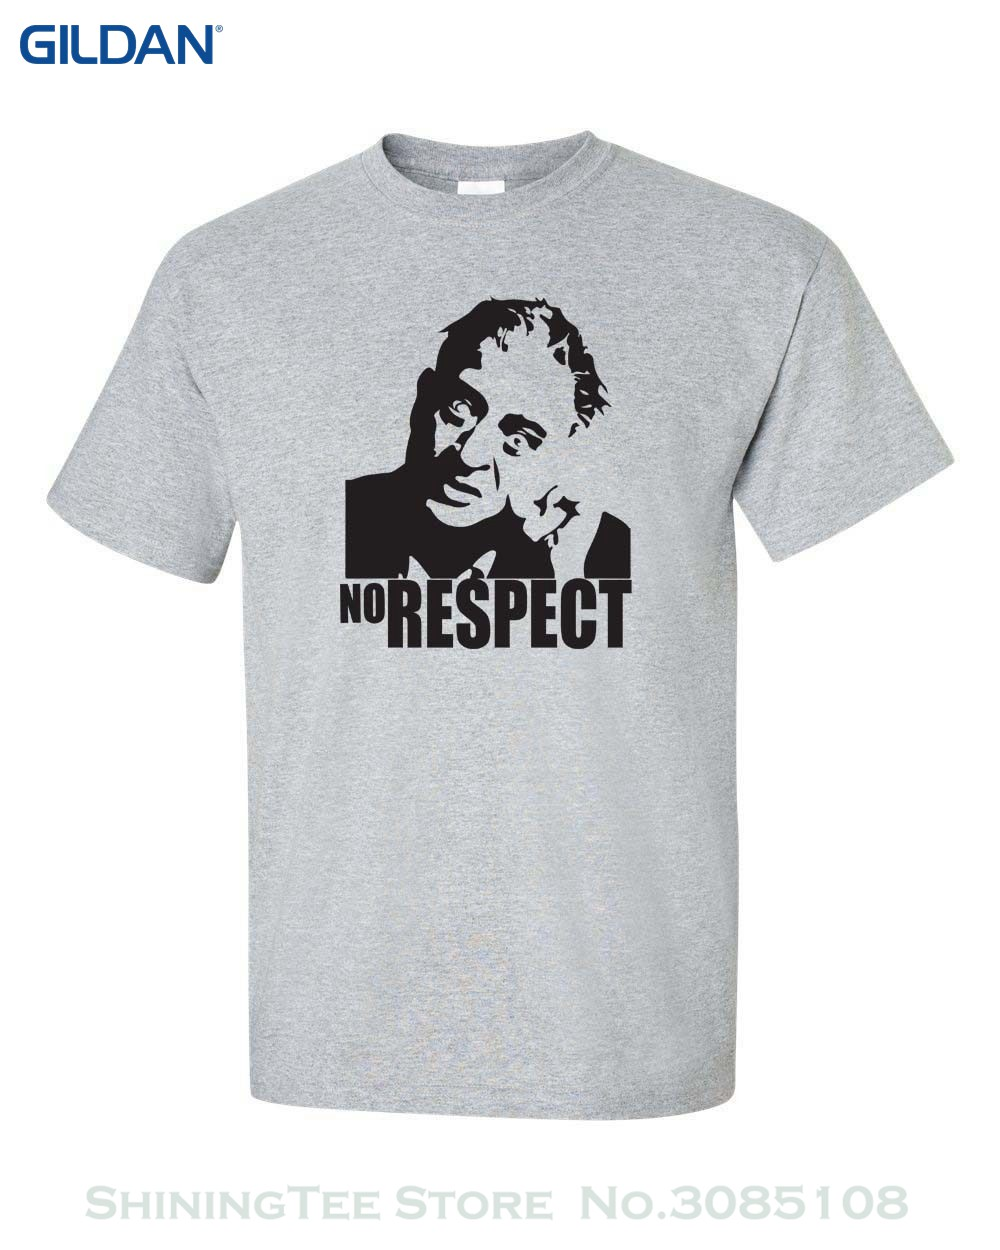 2019 New Short Sleeve Men No Respect Rodney Dangerfield Comedian Funny College Men's Tee Shirt 313 image